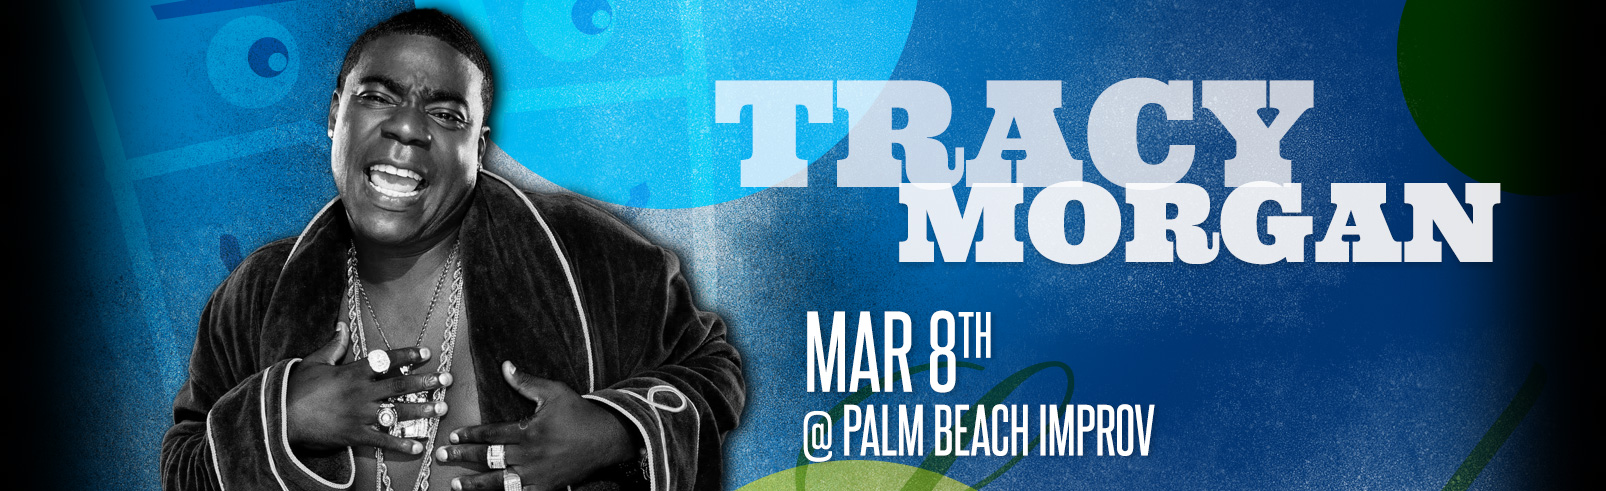 Tracy Morgan @ Palm Beach Improv